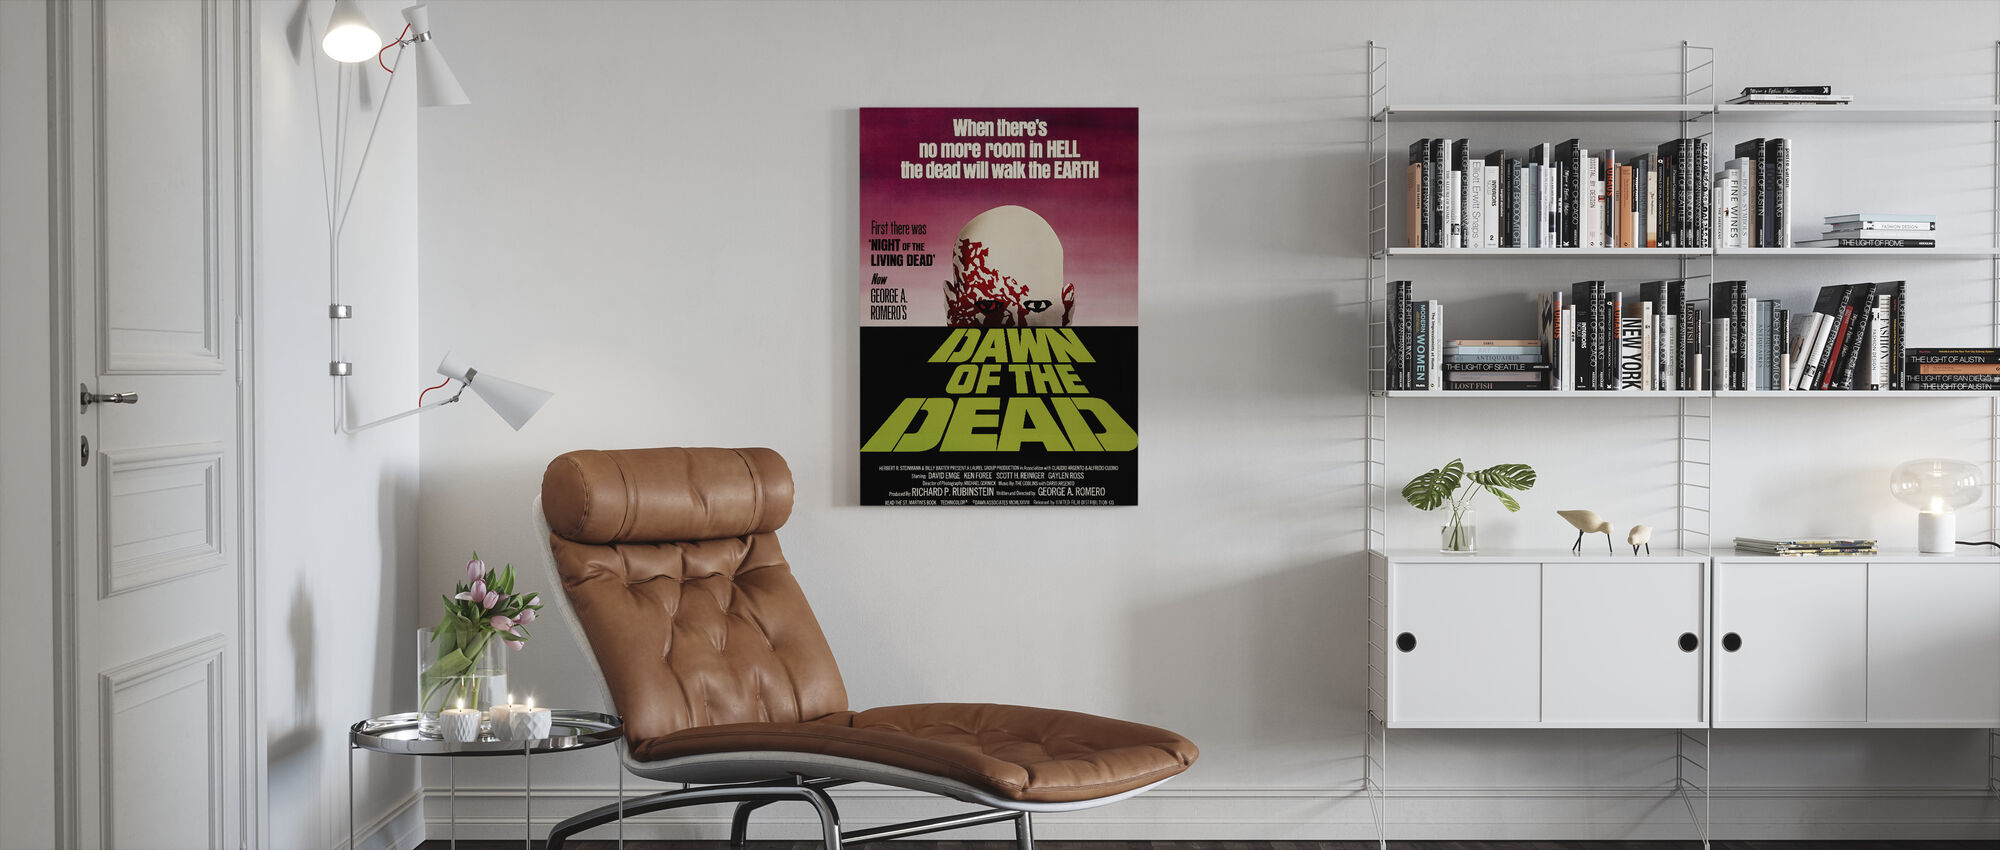 Dawn of the Dead - Canvas print - Living Room